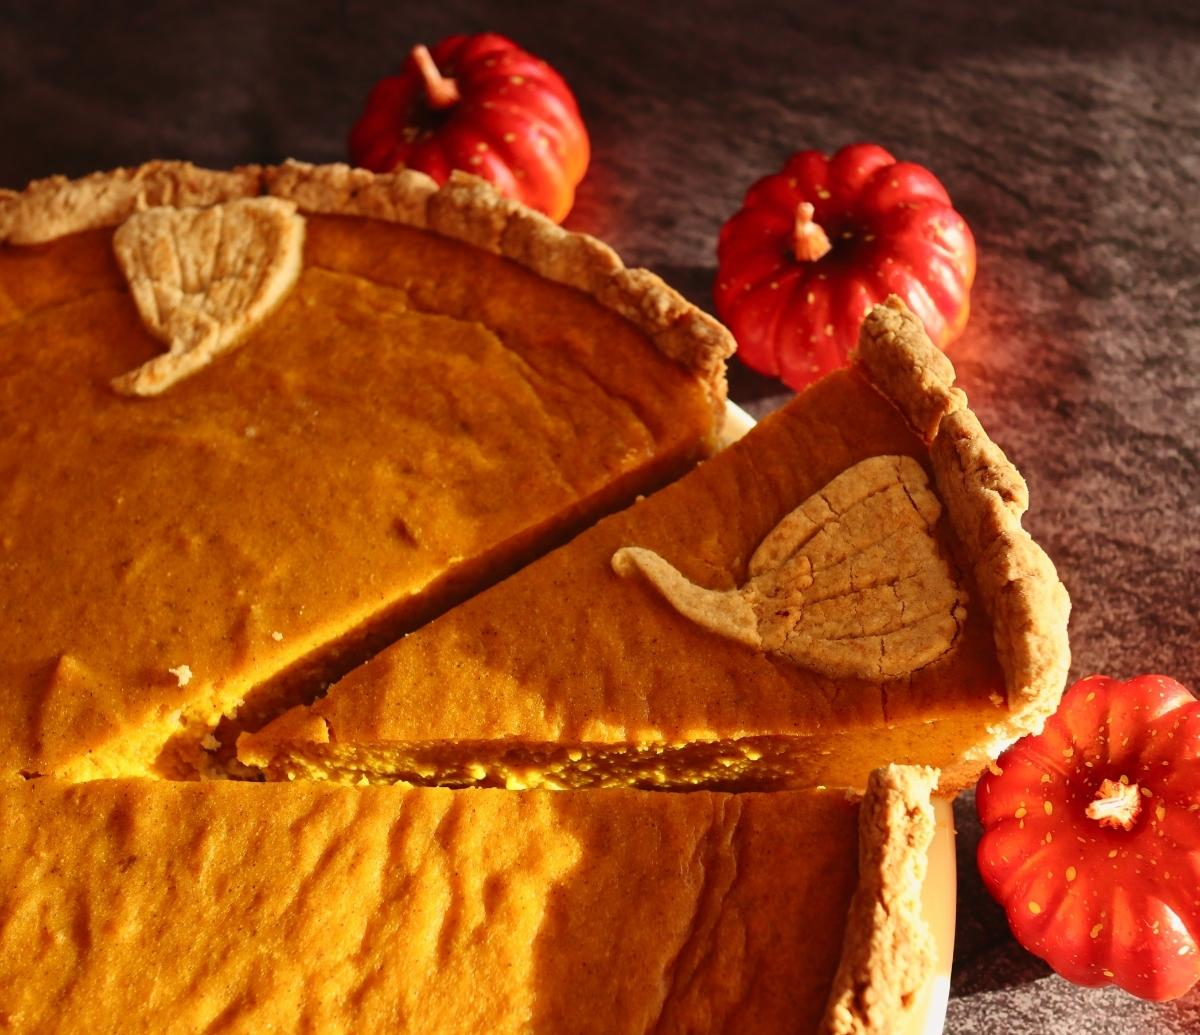 For your coronavirus stress baking, head to a pumpkin patch in or near Enfield and make a perfect from-scratch pumpkin pie.